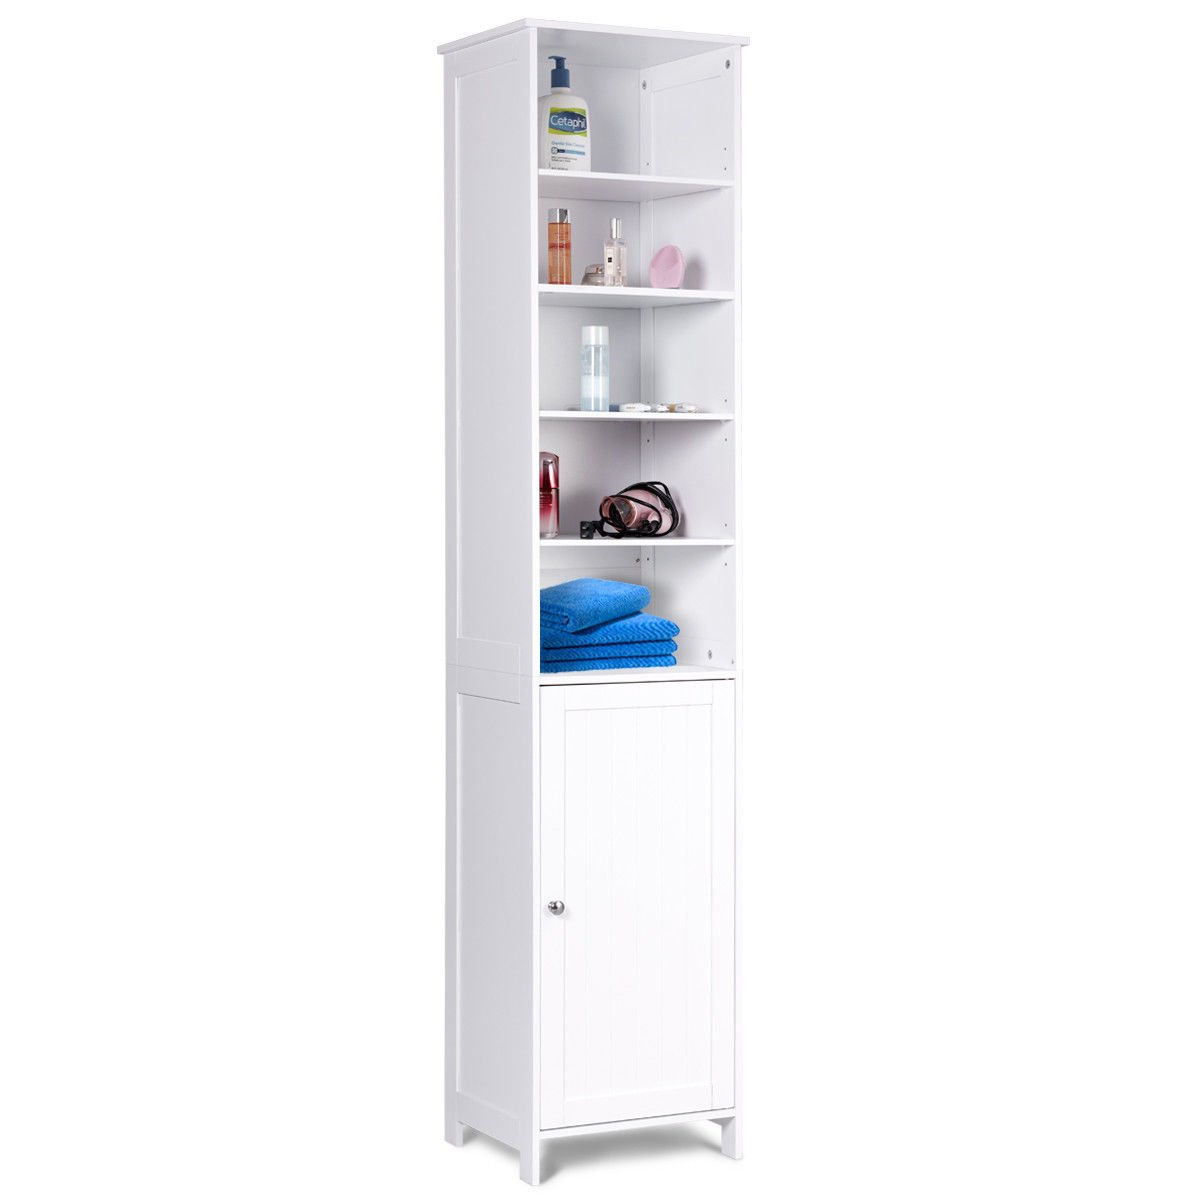 Tangkula 72 Inches Tall Cabinet, Bathroom Free Standing Tower Cabinet with Adjustable Shelves & Cupboard with Door Space Saving Cabinet Organizer Home Storage Furniture, White by Tangkula